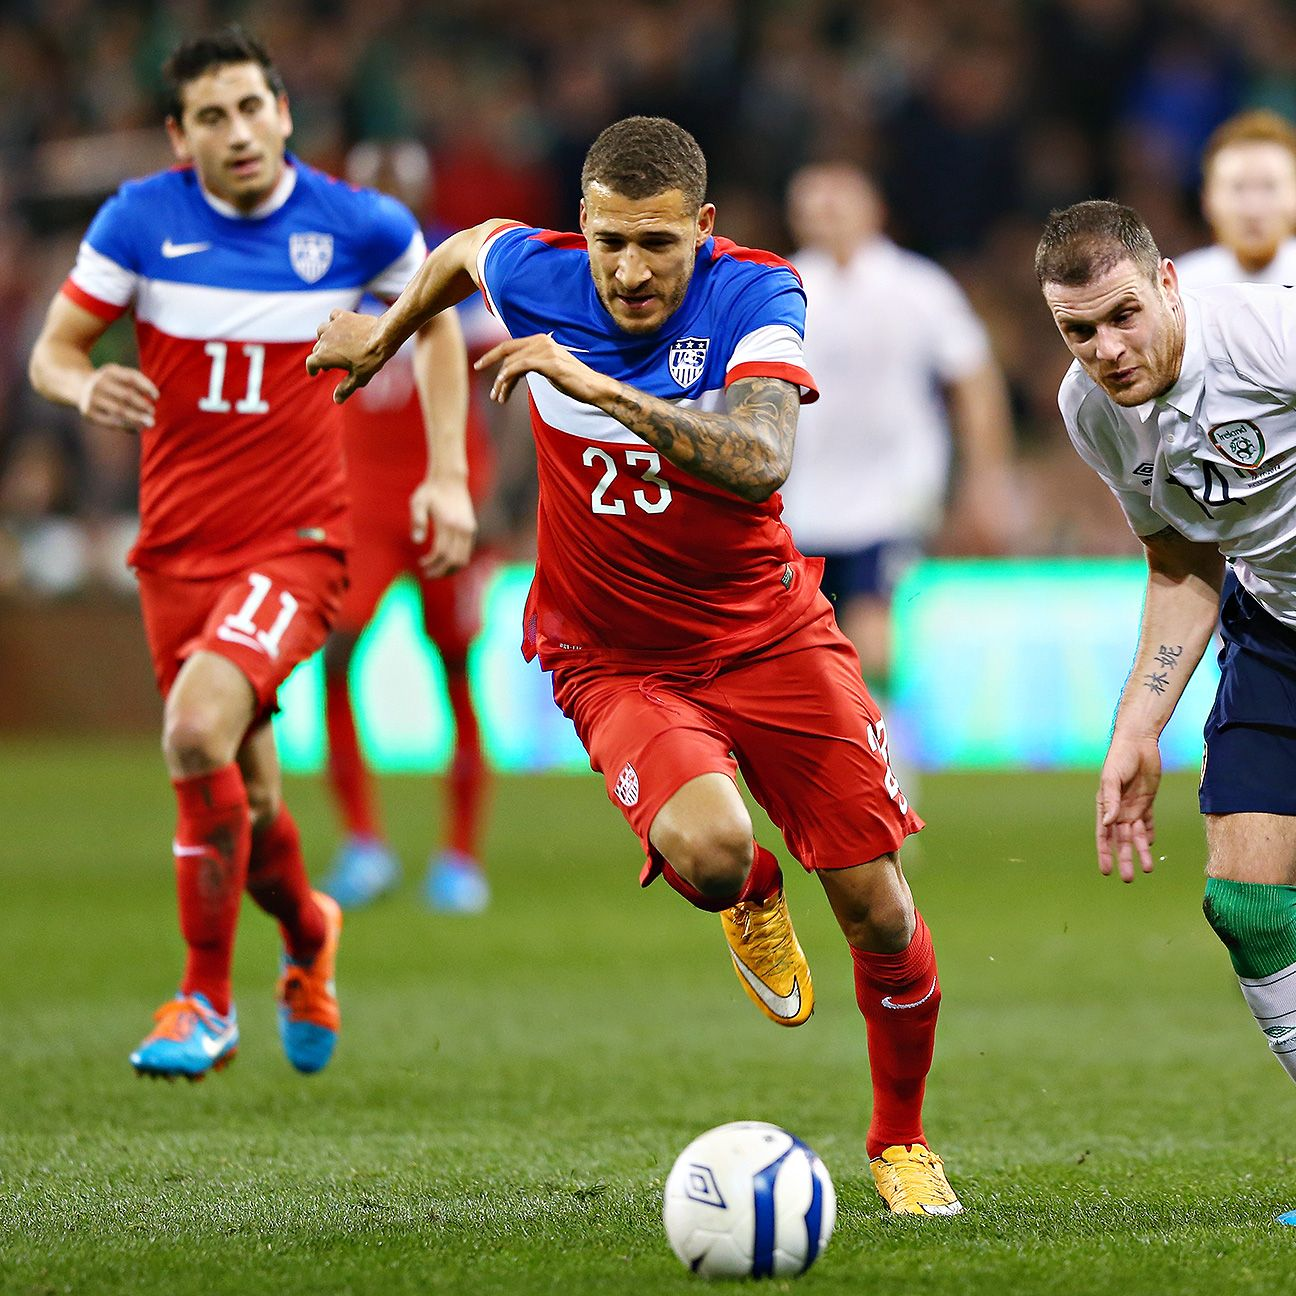 Fabian Johnson's recent struggles were on full display in the loss to the Irish.